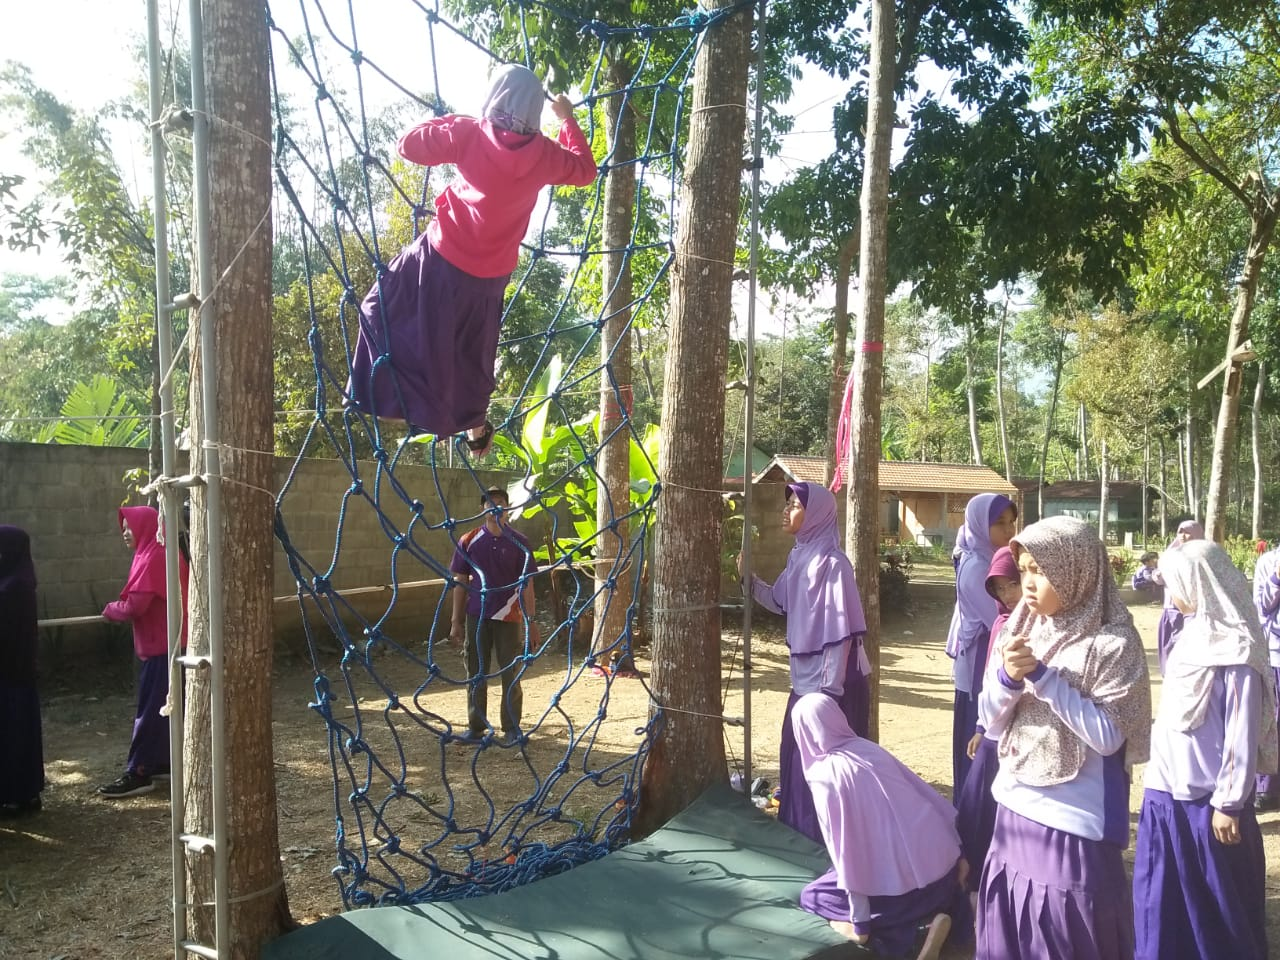 Outbound & Camp SDIT NURUL FIKRI SIDOARJO - Lentera Camp Trawas